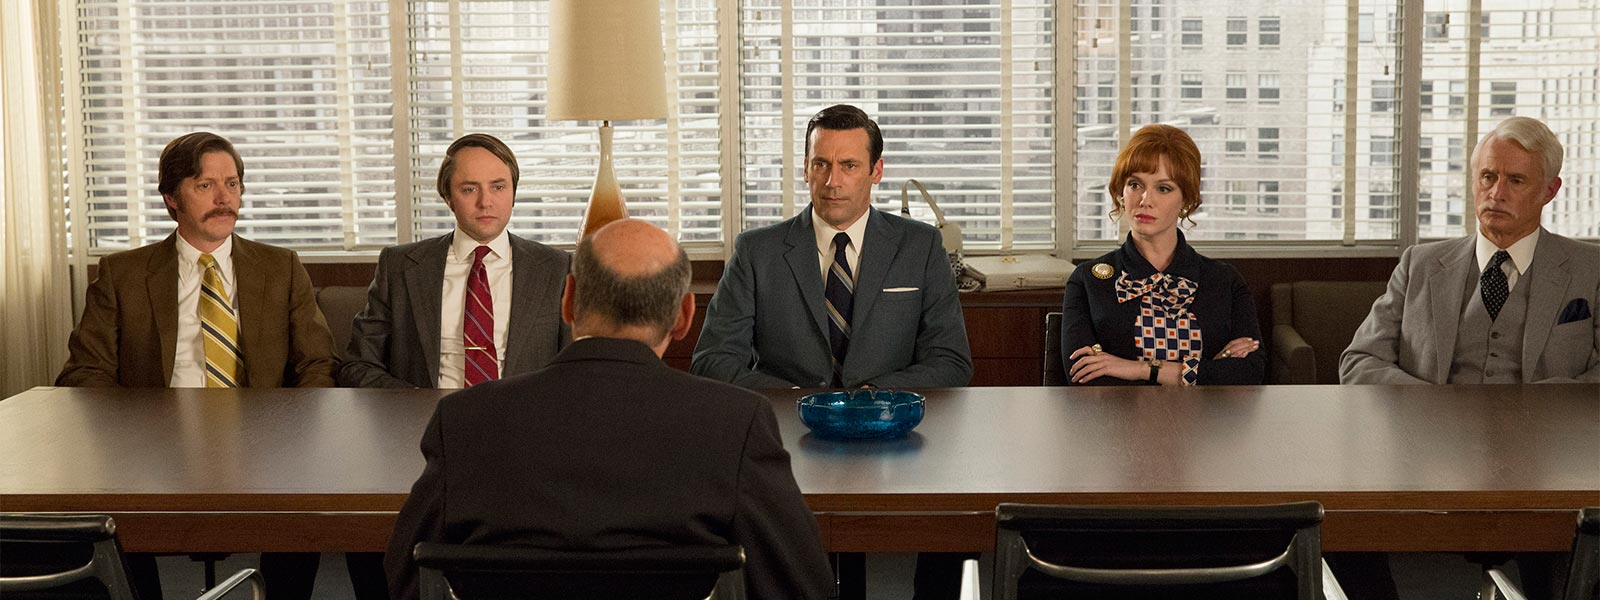 Mad Men Season 7 Episode And Cast Information Amc